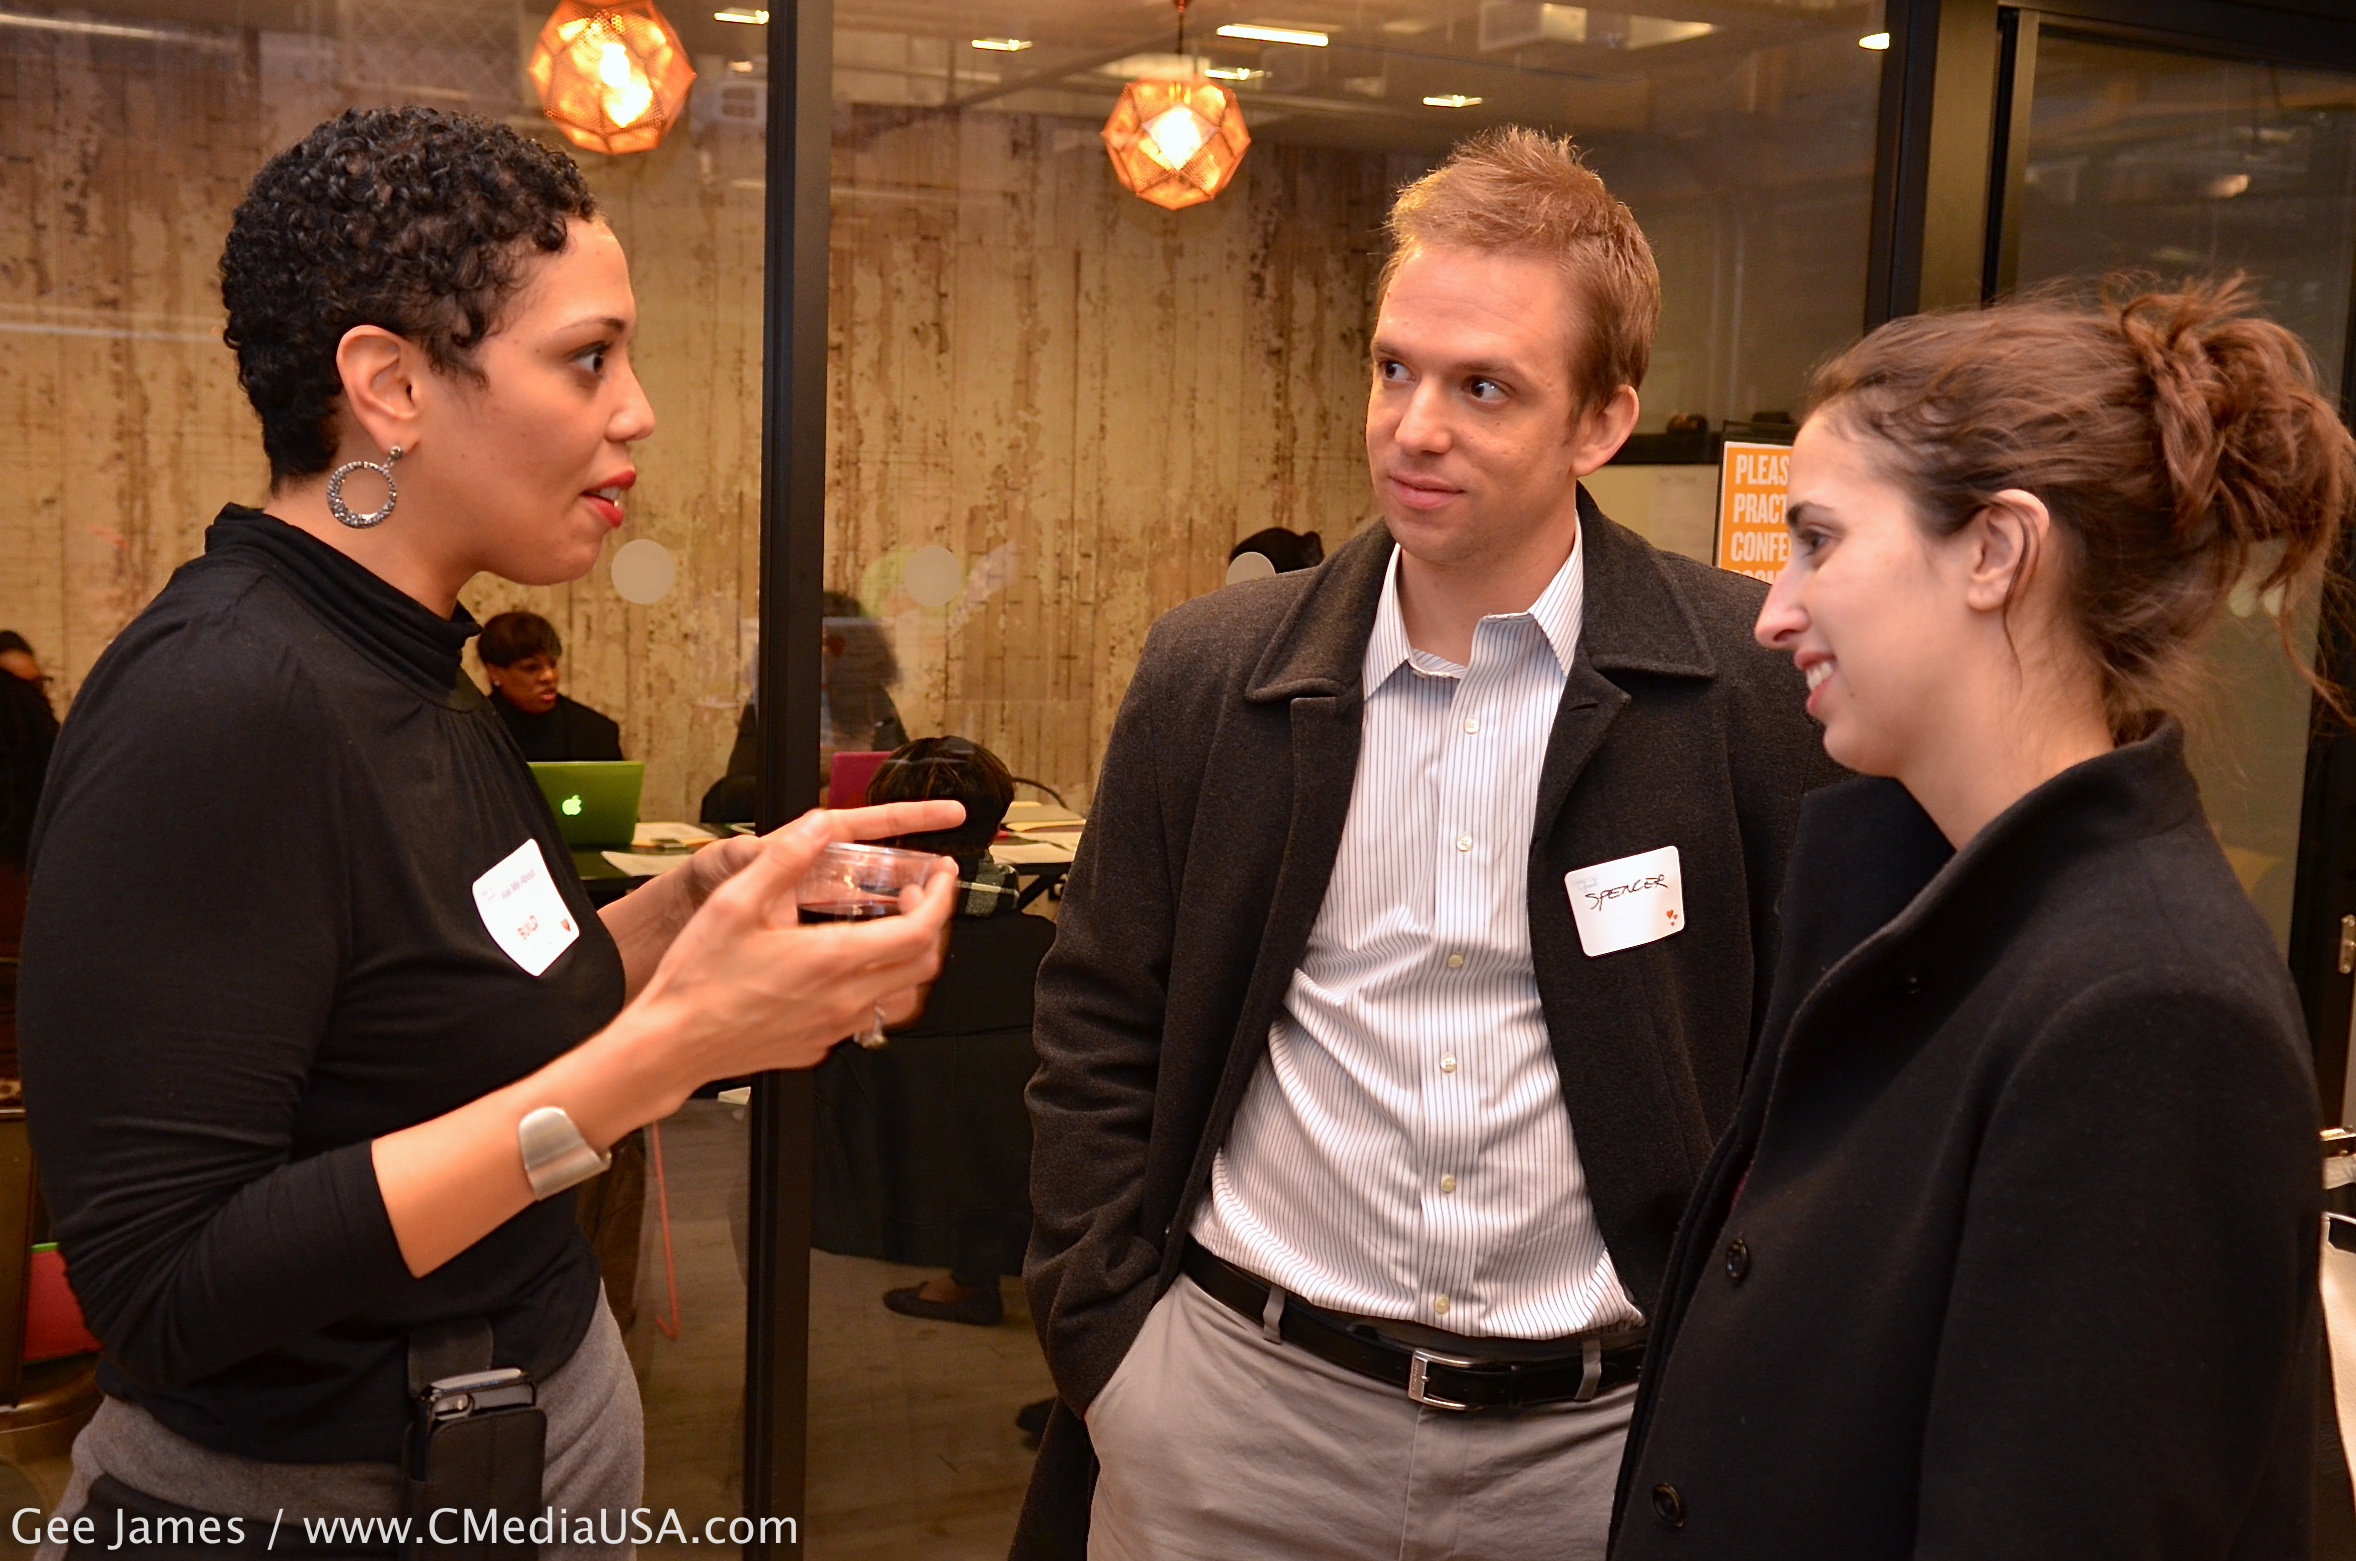 """Natalie Benitez, program manager for BUILD, talks with Spencer Case and Rebecca Wolff. """"We're looking to help make the world a better place,"""" Spencer said./Photo by Gee James for CapitolMedia"""